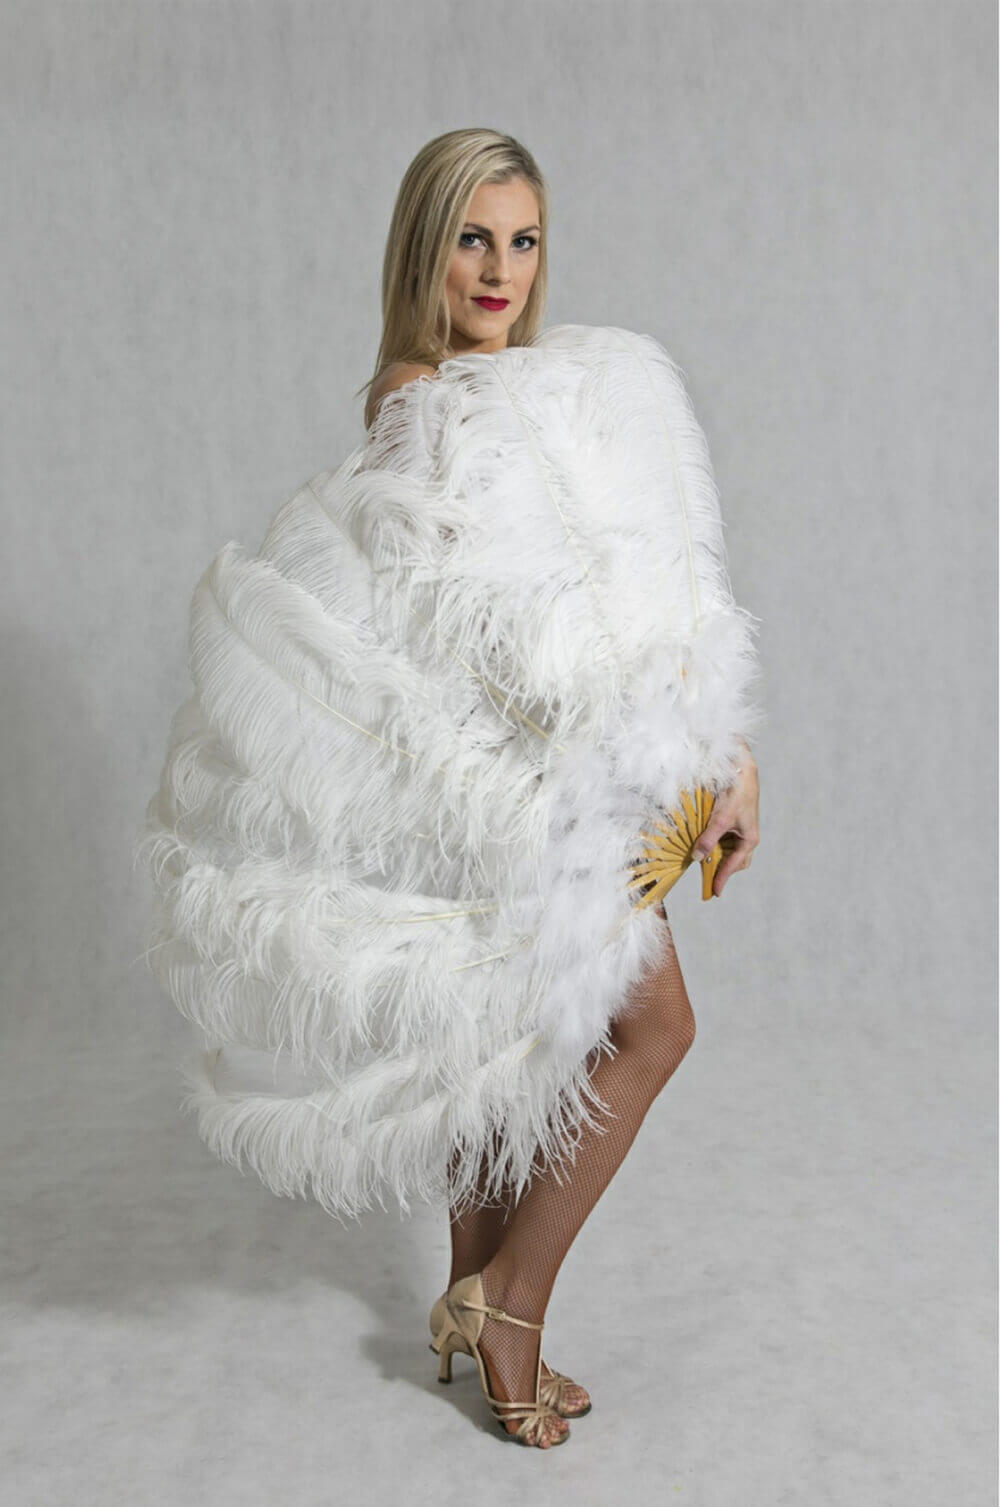 Burlesque Dancers NSW | Corporate and Party Entertainment